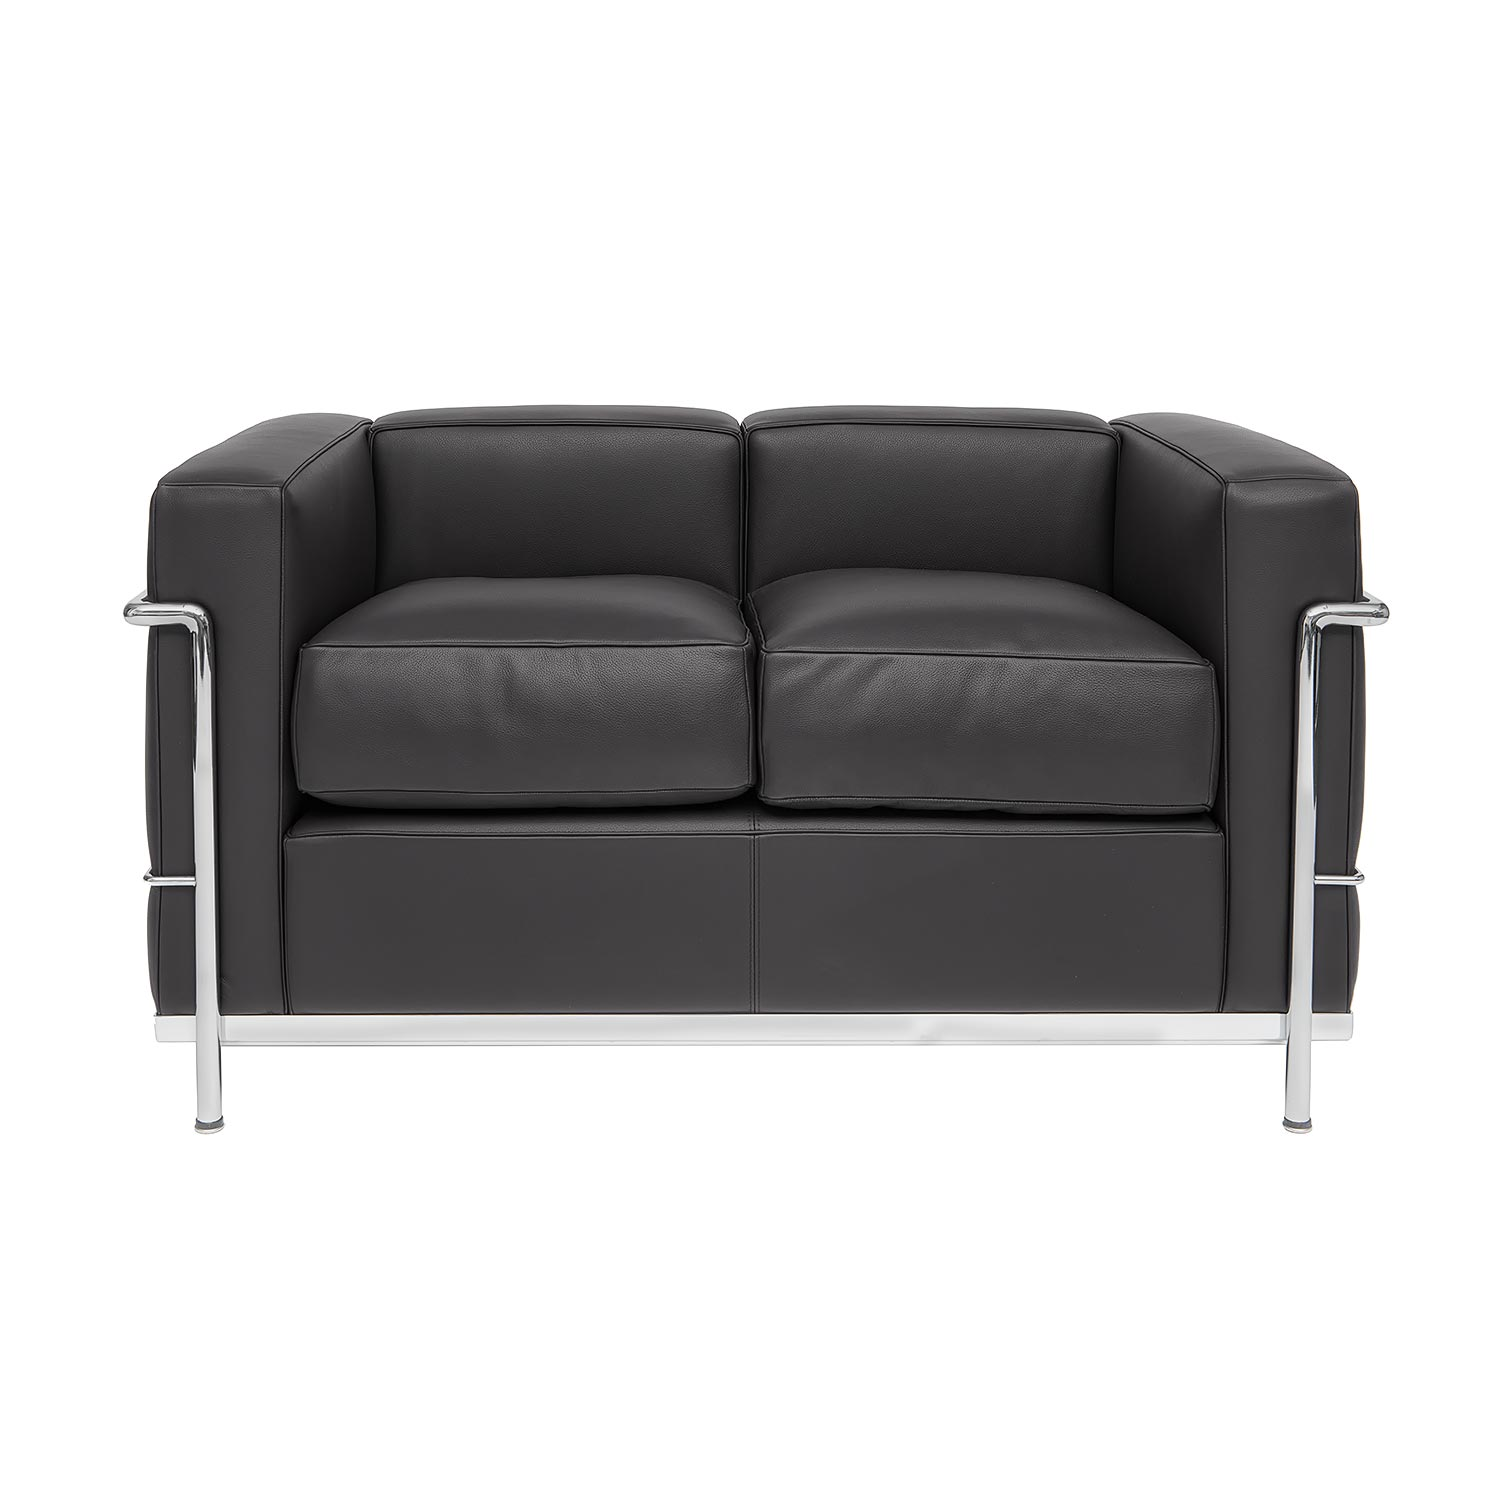 corbusier designed sofa lc 22 steelform design classics. Black Bedroom Furniture Sets. Home Design Ideas